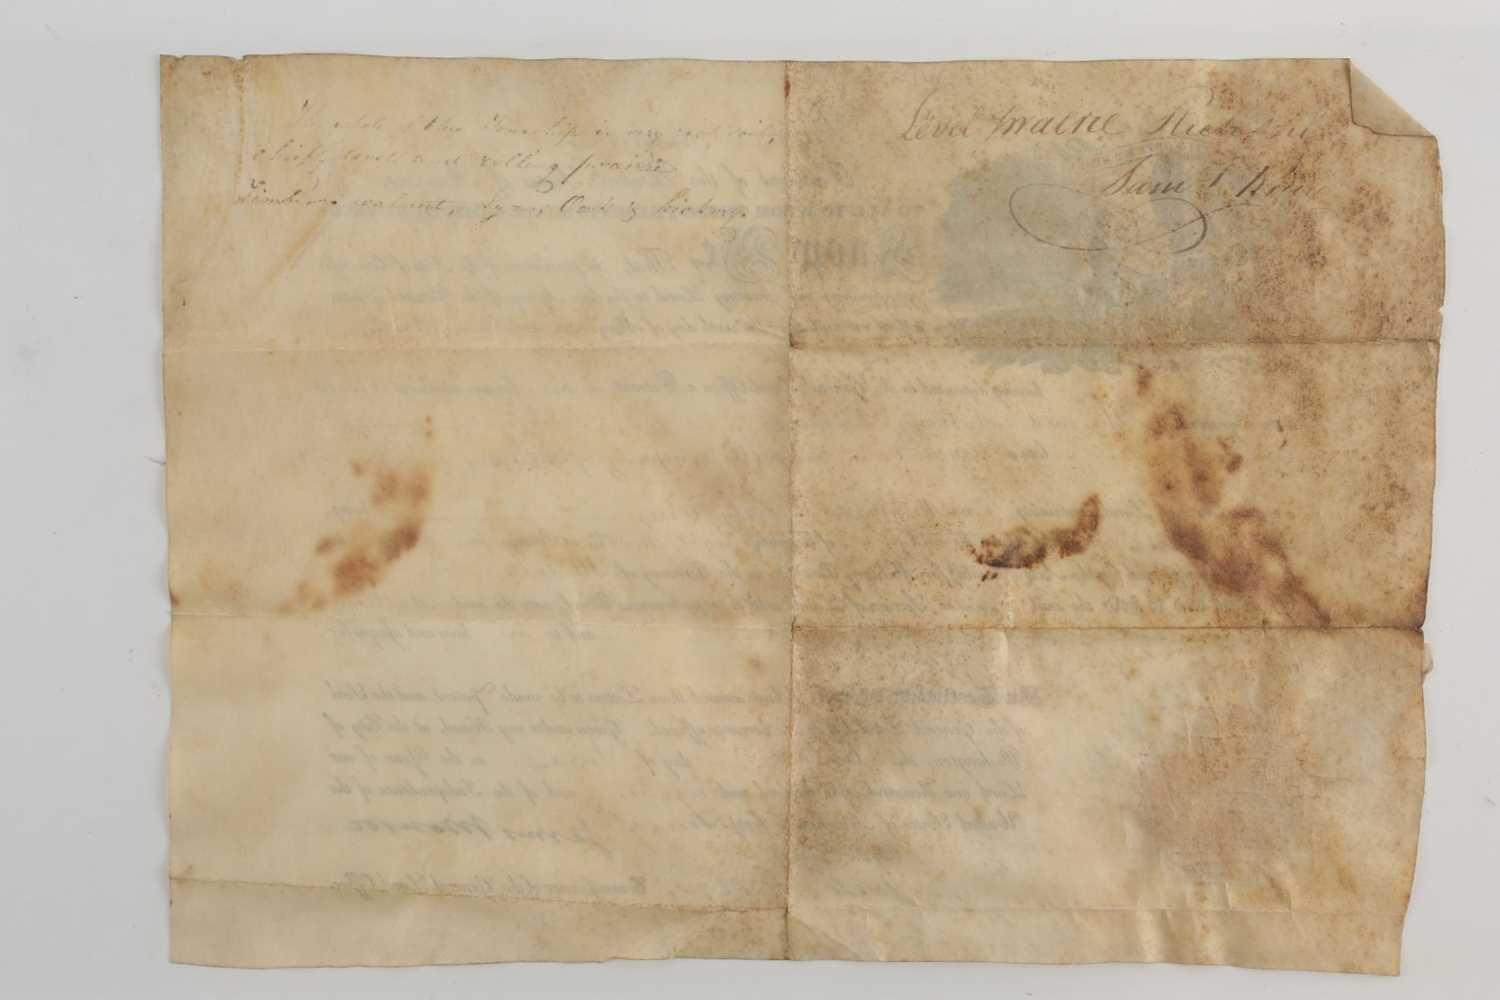 Historical American Interest. An early 19th-century velum land grant indenture signed by James - Image 4 of 4